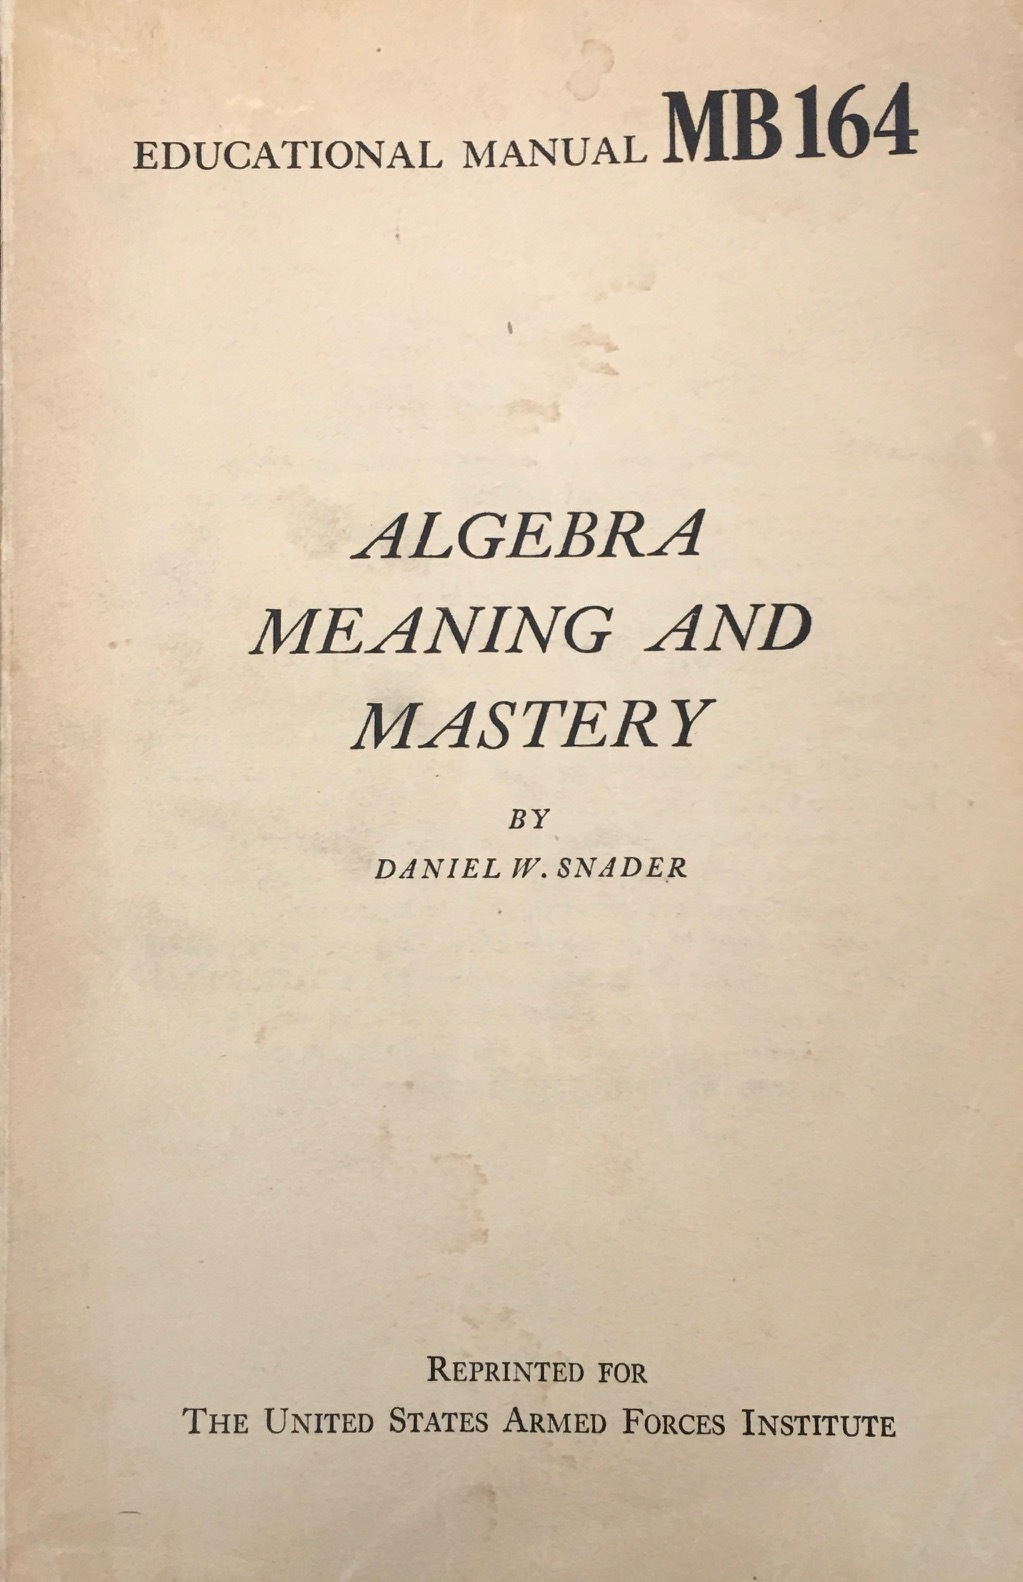 Image for Algebra Meaning and Mastery (Educational Manual - MB164)